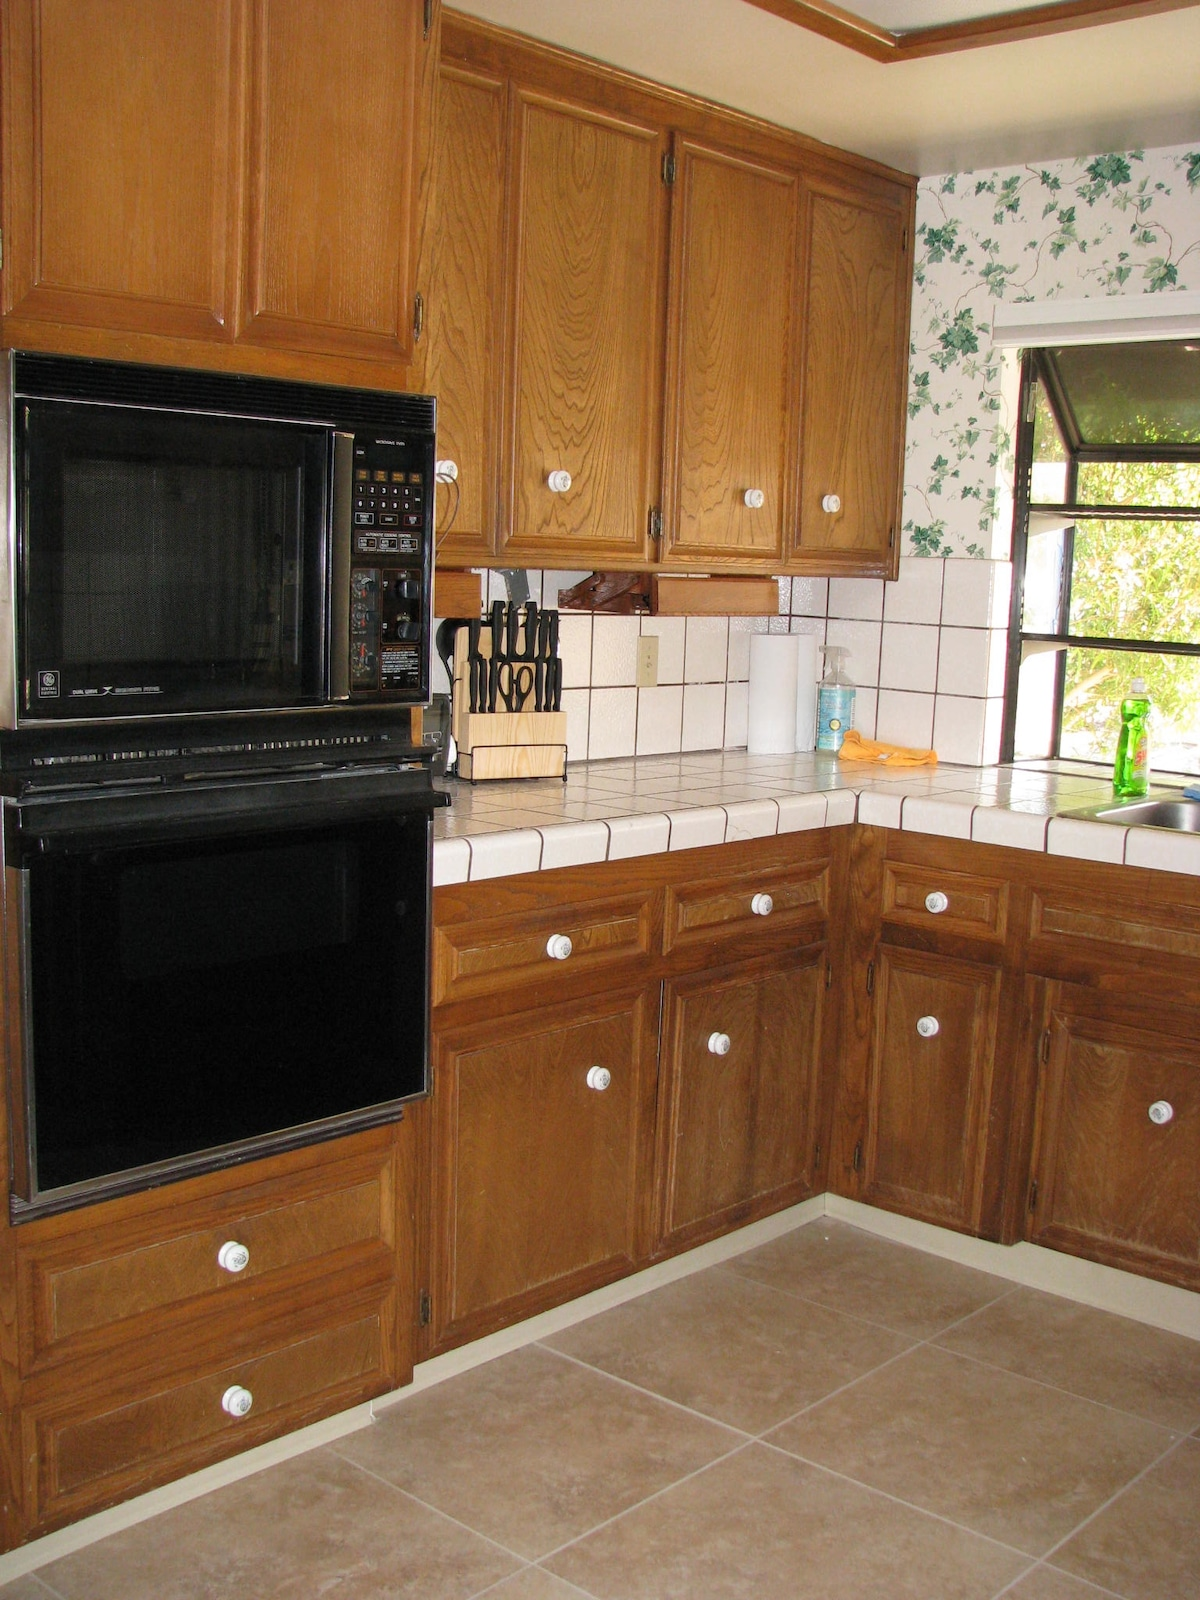 Modern and fully equipped kitchen with garden window.